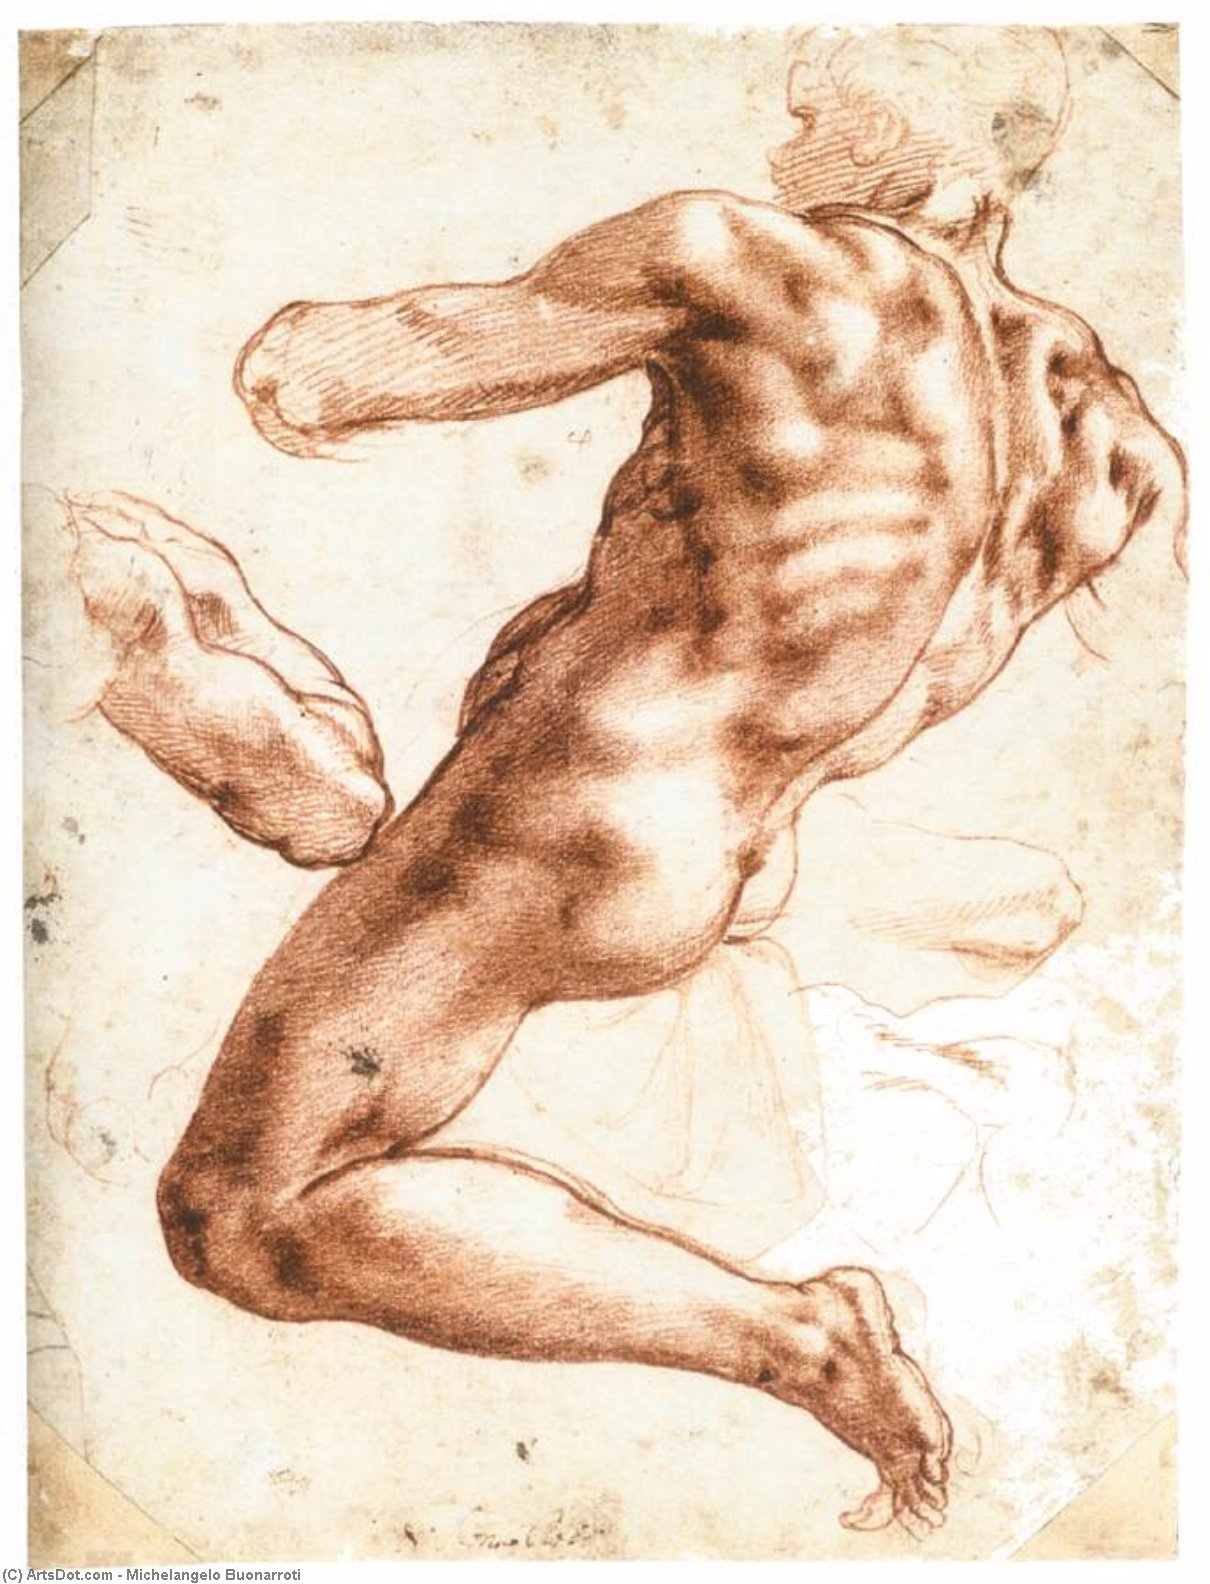 the childhood education and achievements of italian michelangelo buonarotti Michelangelo biography during his childhood, michelangelo lived in florence and spent a lot of time in a family manor in the michelangelo italian artist essay.